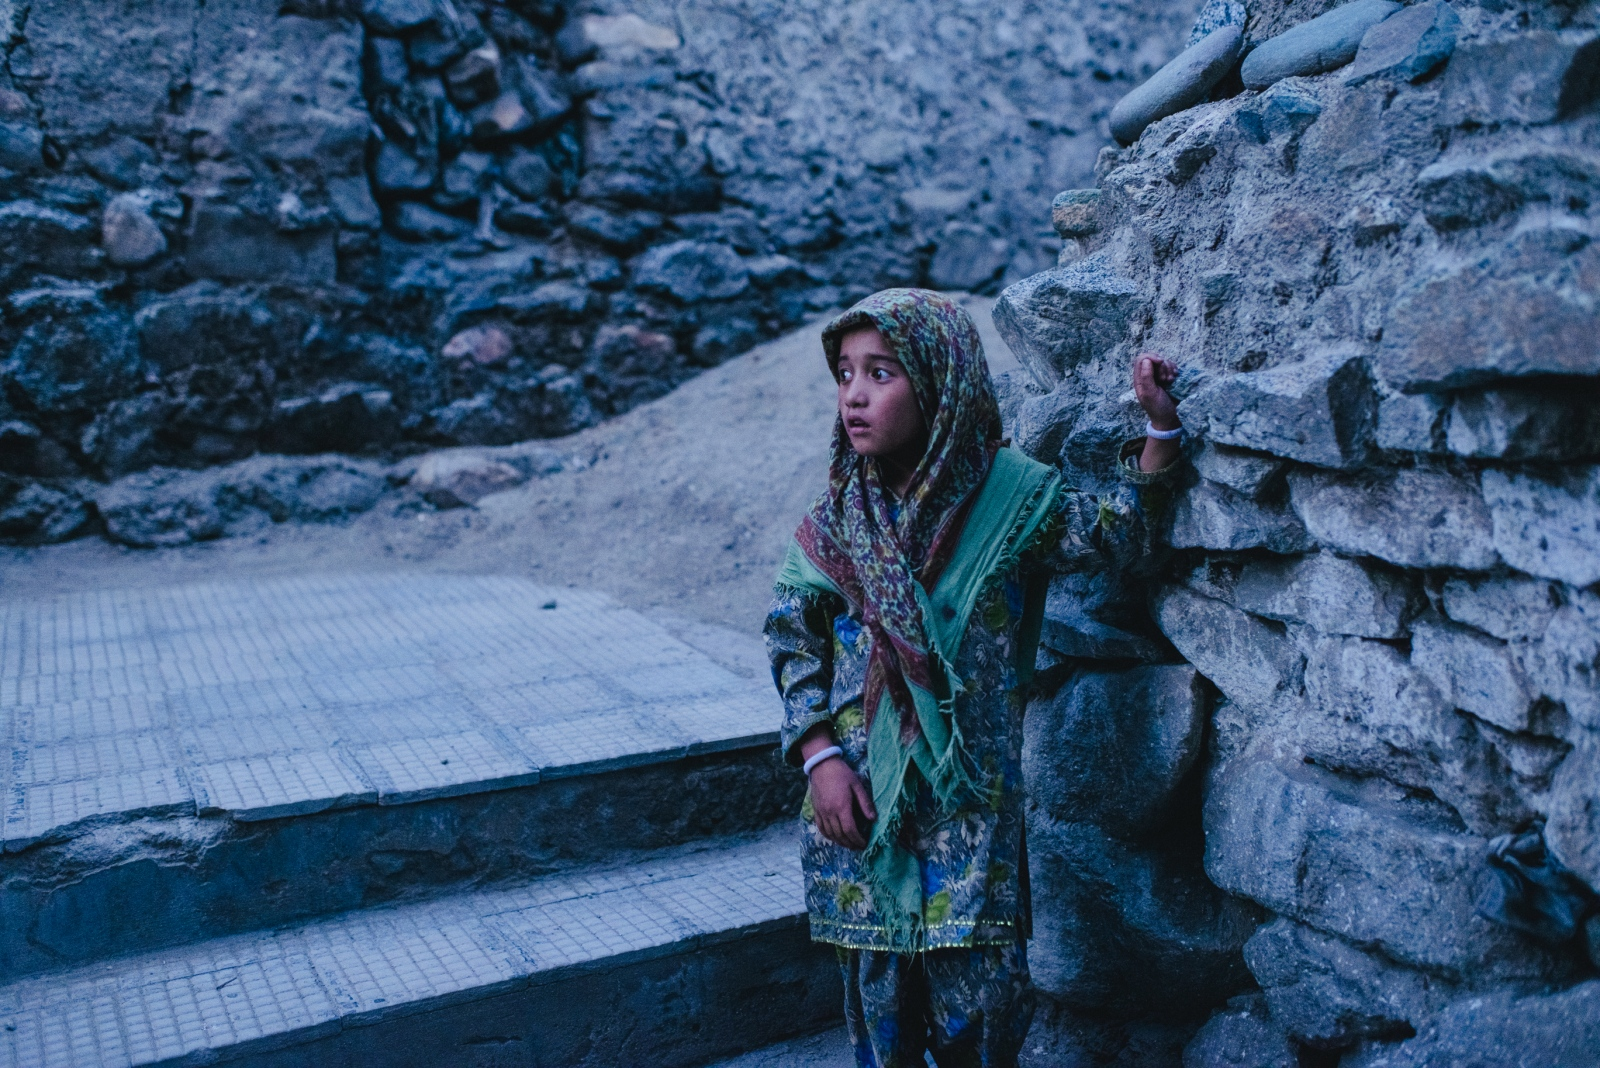 Jasmin, a young girl living in Leh, sells postcards to tourists on the narrow pathway from Jamia Masjid to Leh Palace.